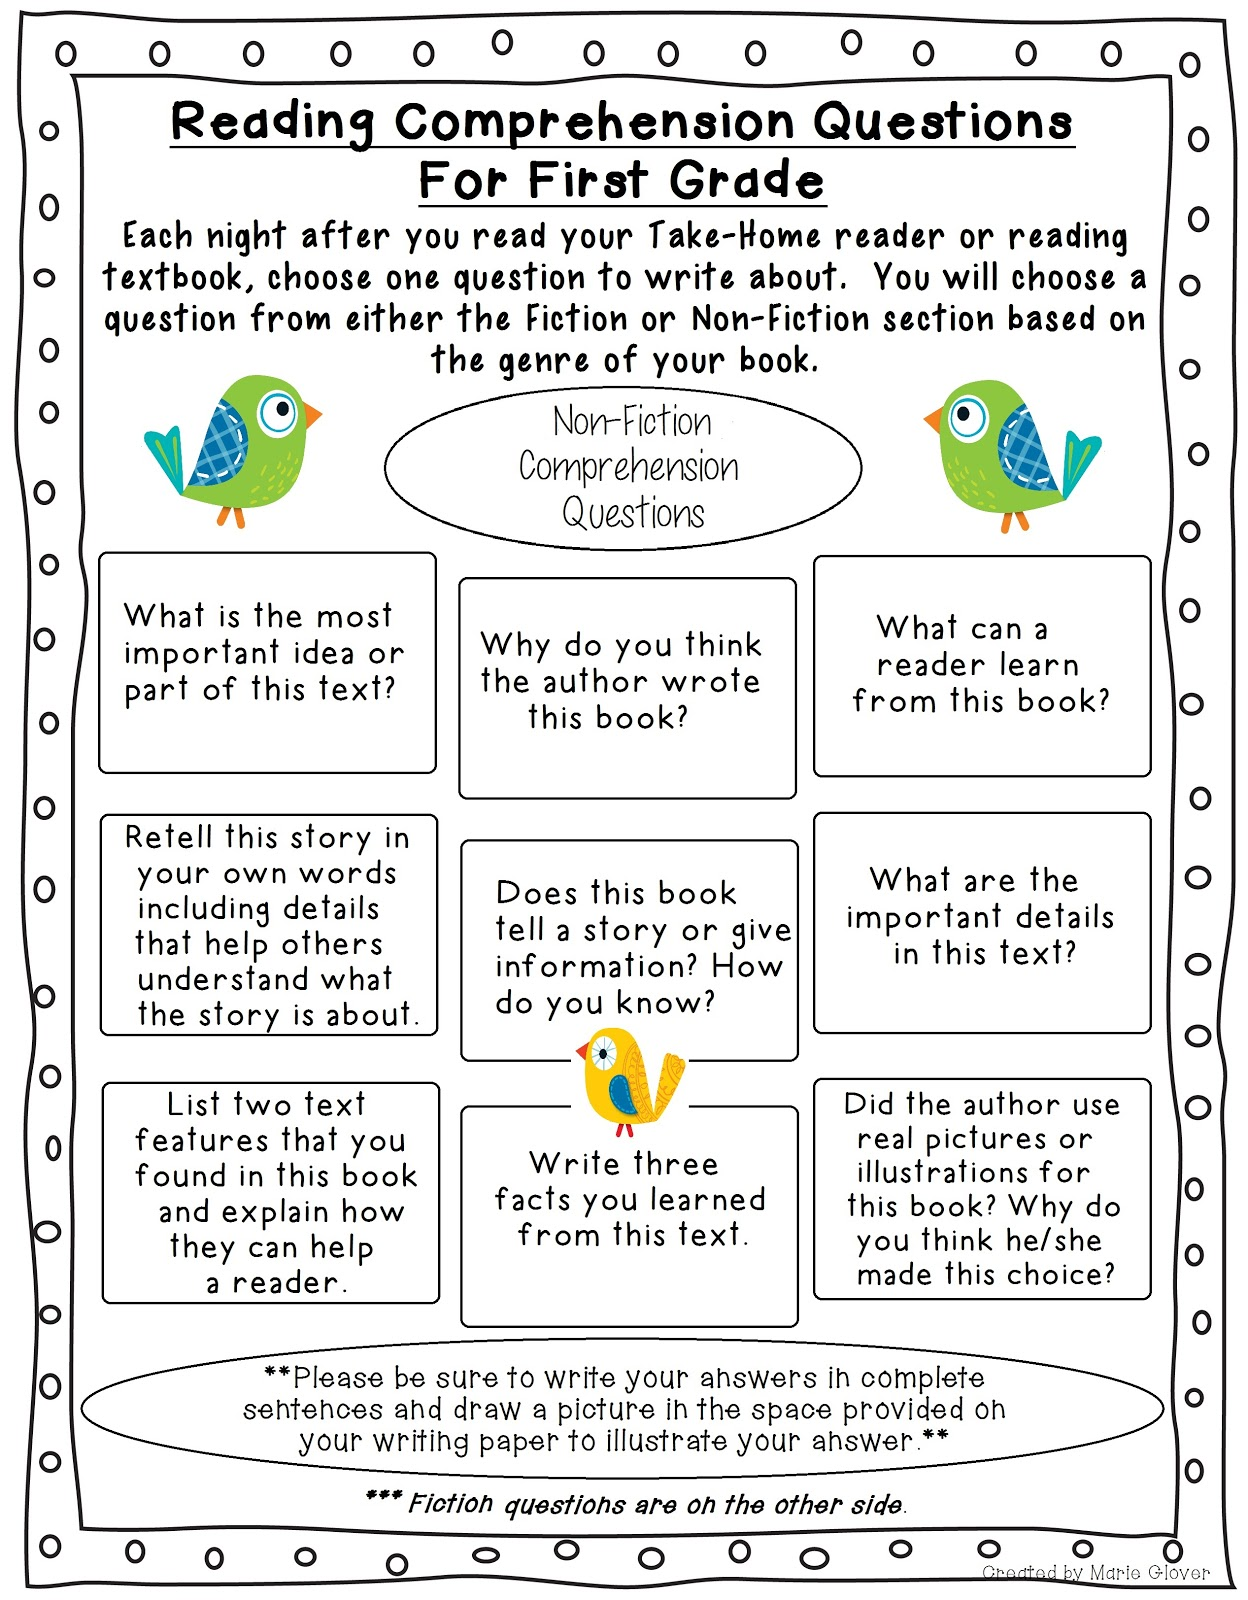 Nonfiction Comprehension Questions